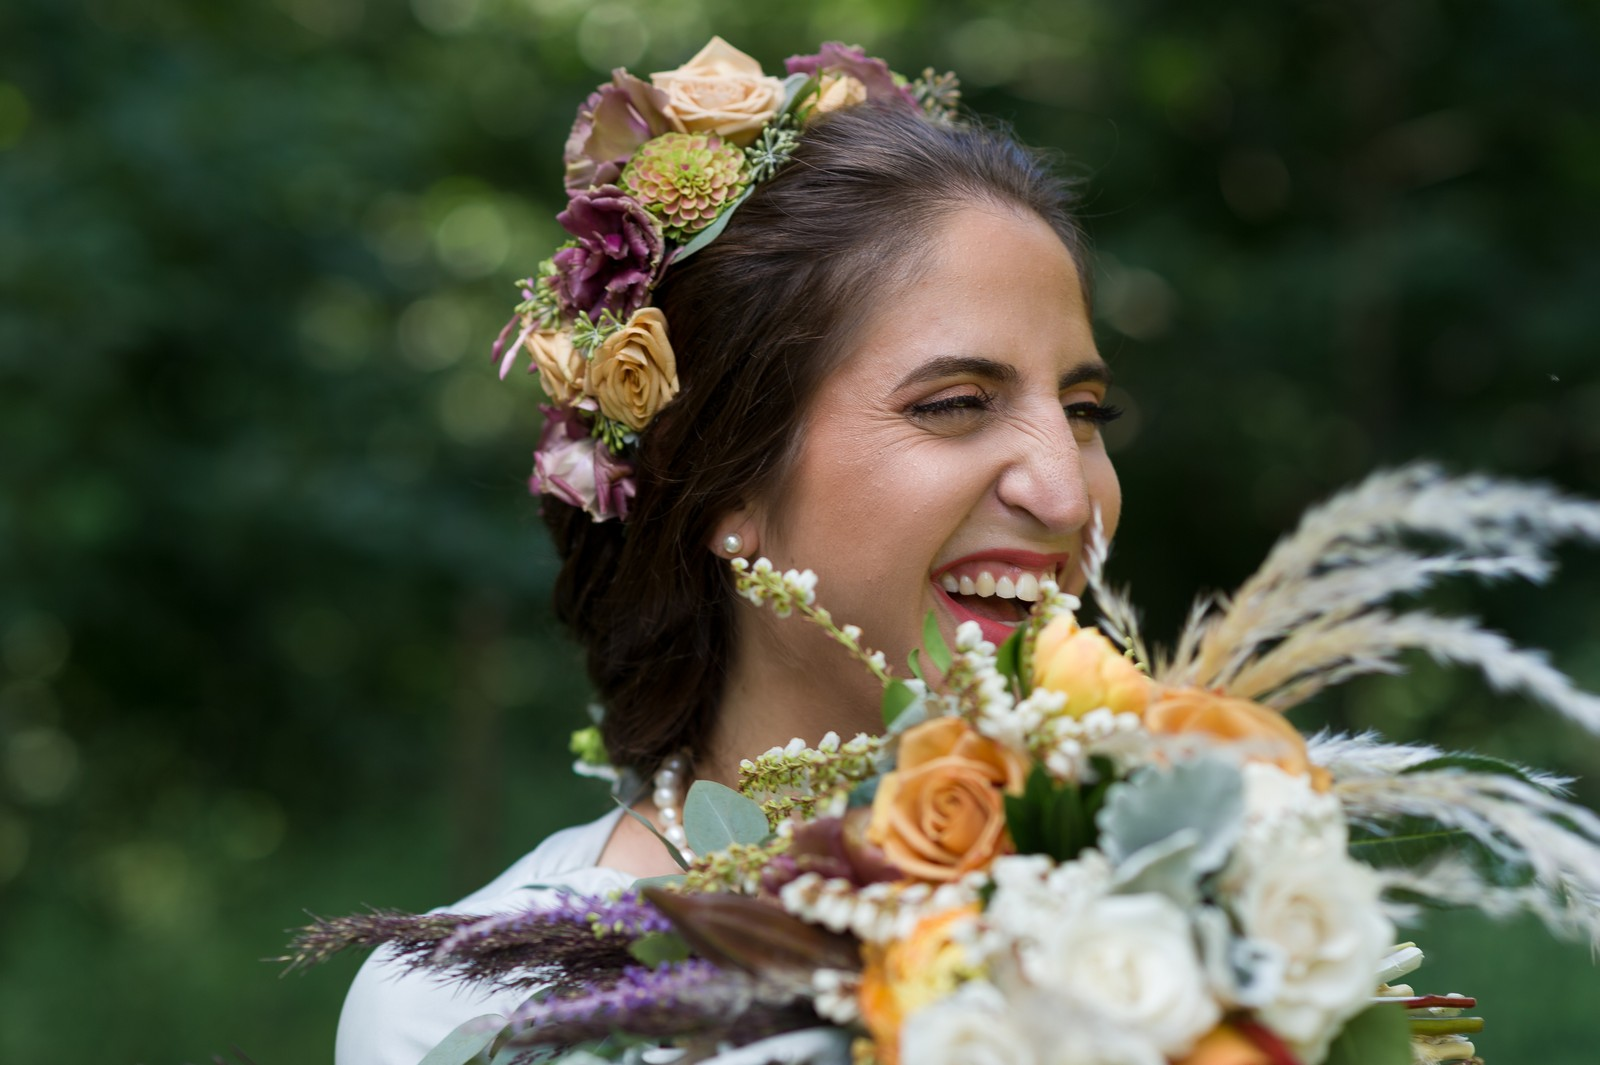 Chana and Motty's Chabad Jewish Wedding in Prospect Park Picnic House, Brooklyn, NY, Photos by Chaim Schvarcz bride portraits flowers